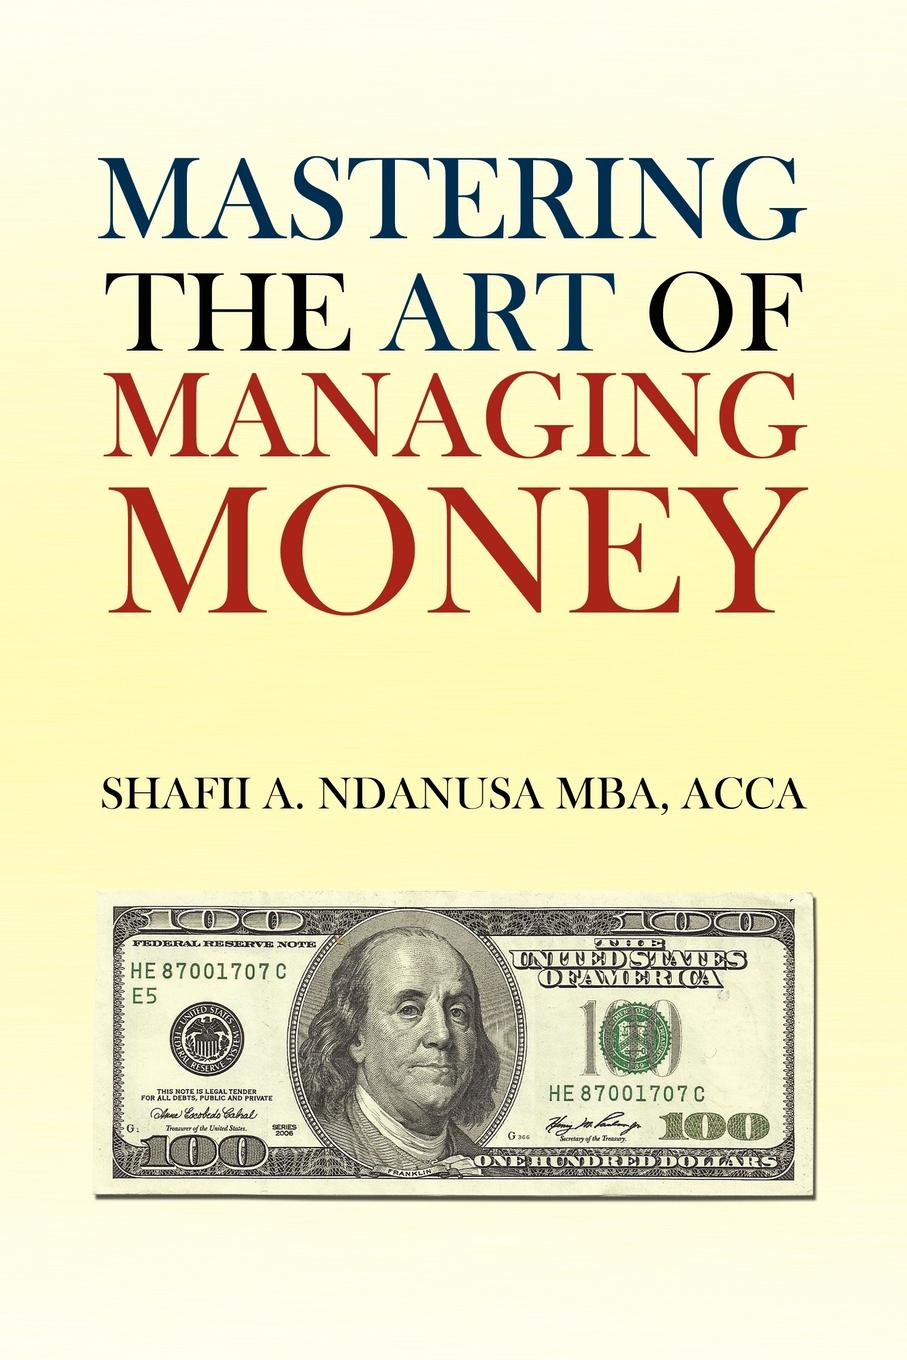 Shafii A. Ndanusa ACCA MBA Mastering the Art of Managing Money. Secrets for Success In the Management of Personal And Corporate Finances